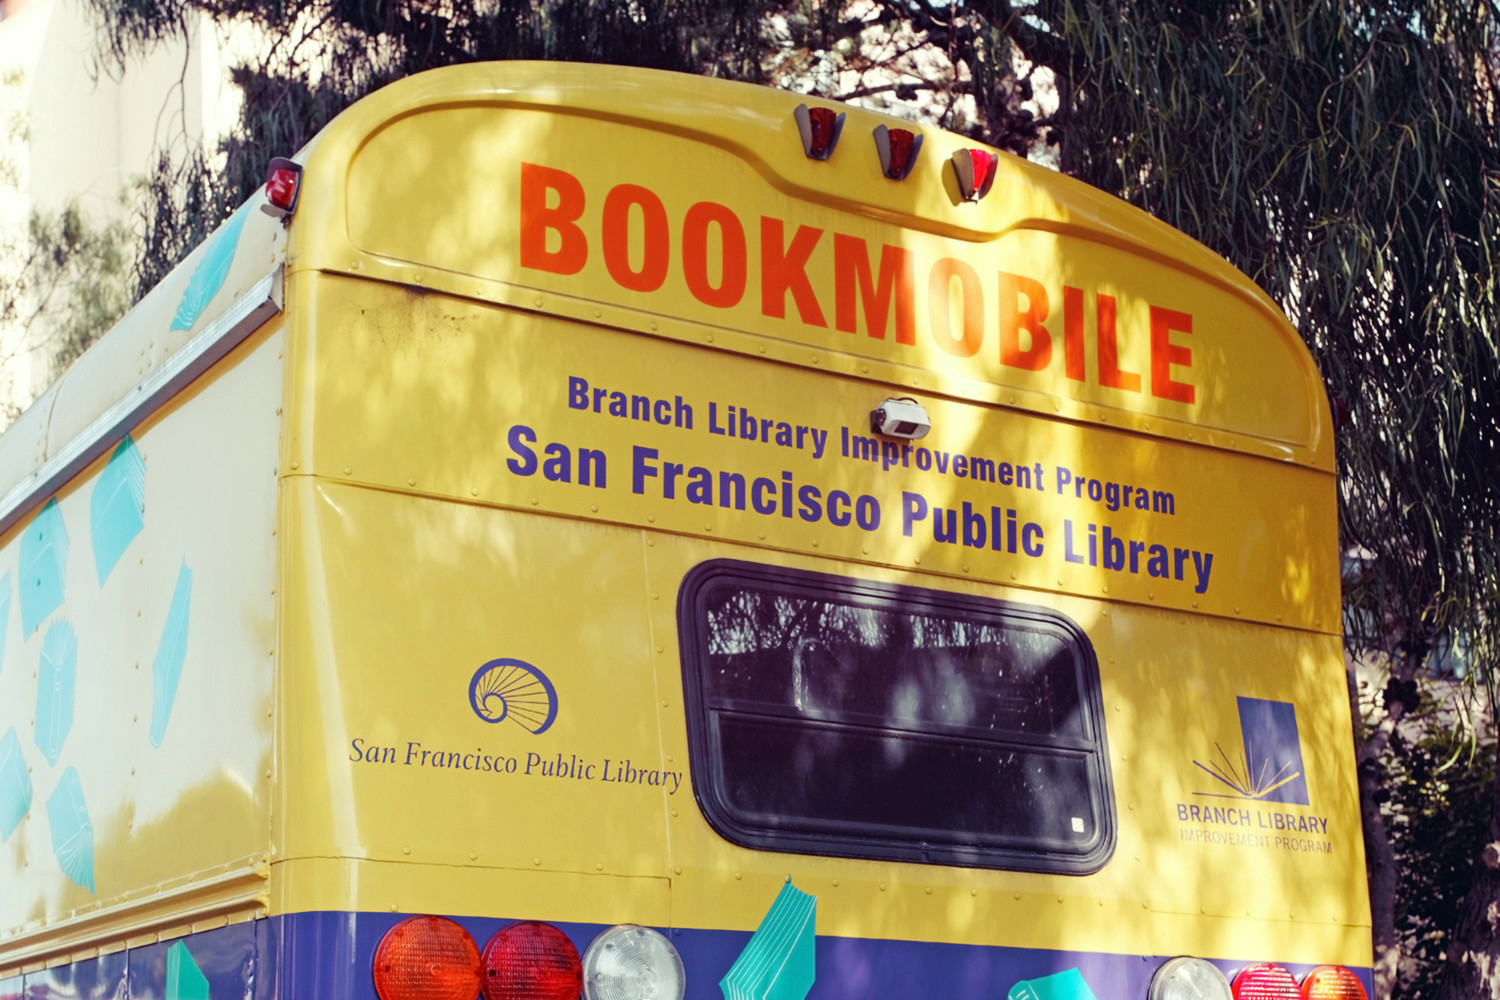 Find a Bookmobile